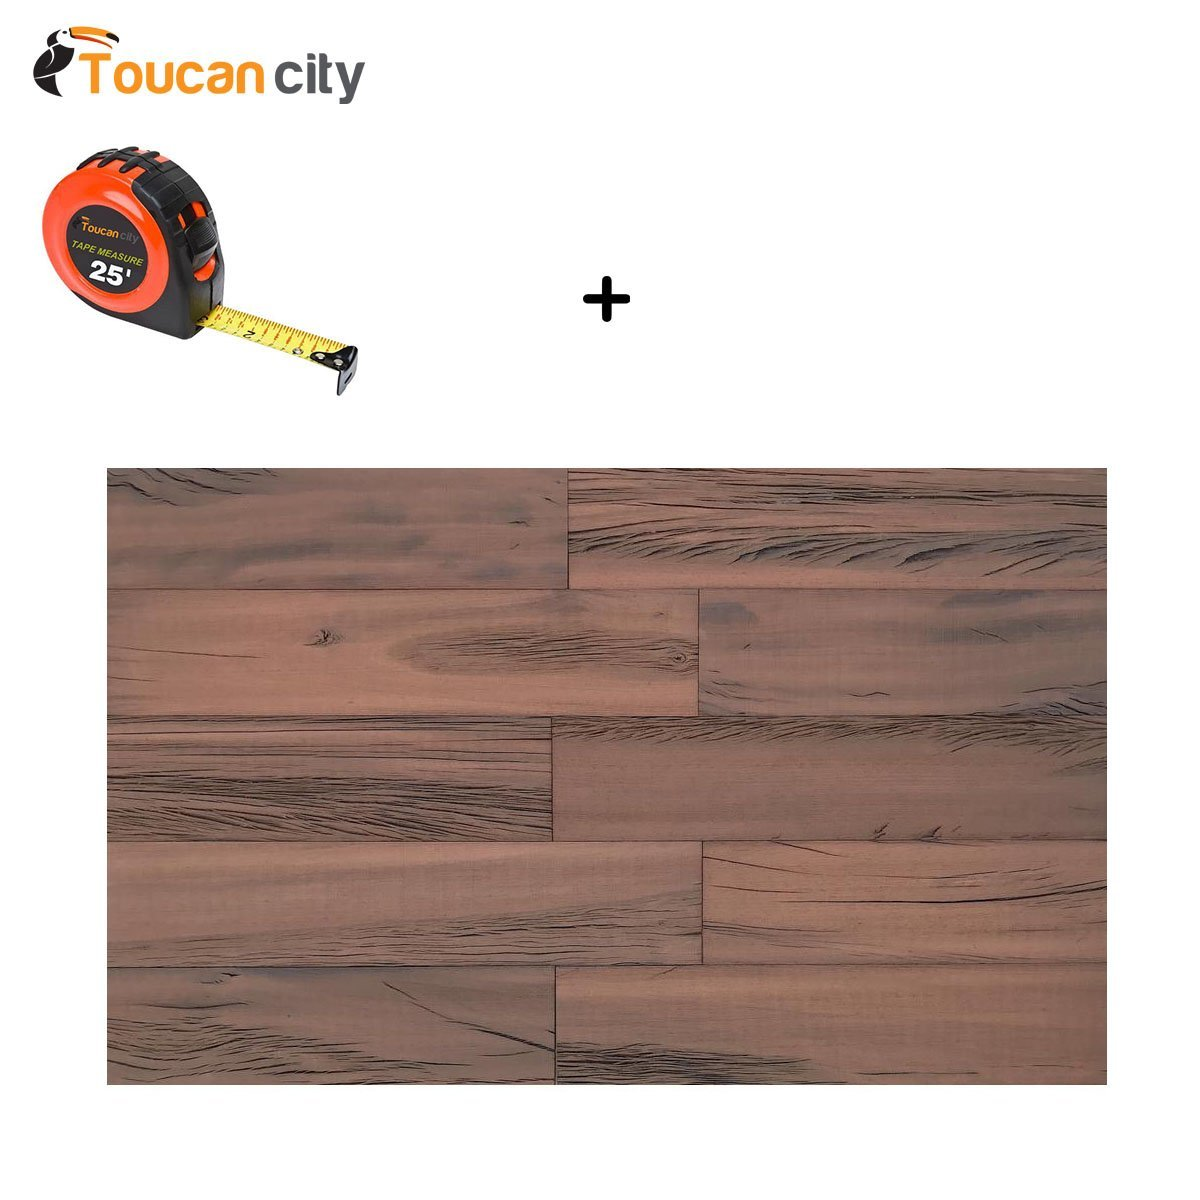 Toucan City Tape Measure and 3D Holey Wood 50 in. 1/4 in. x 4 in. x 24 in. Reclaimed Wood Decorative Wall Planks in Brown Color (10 sq. ft. / Case) 11133